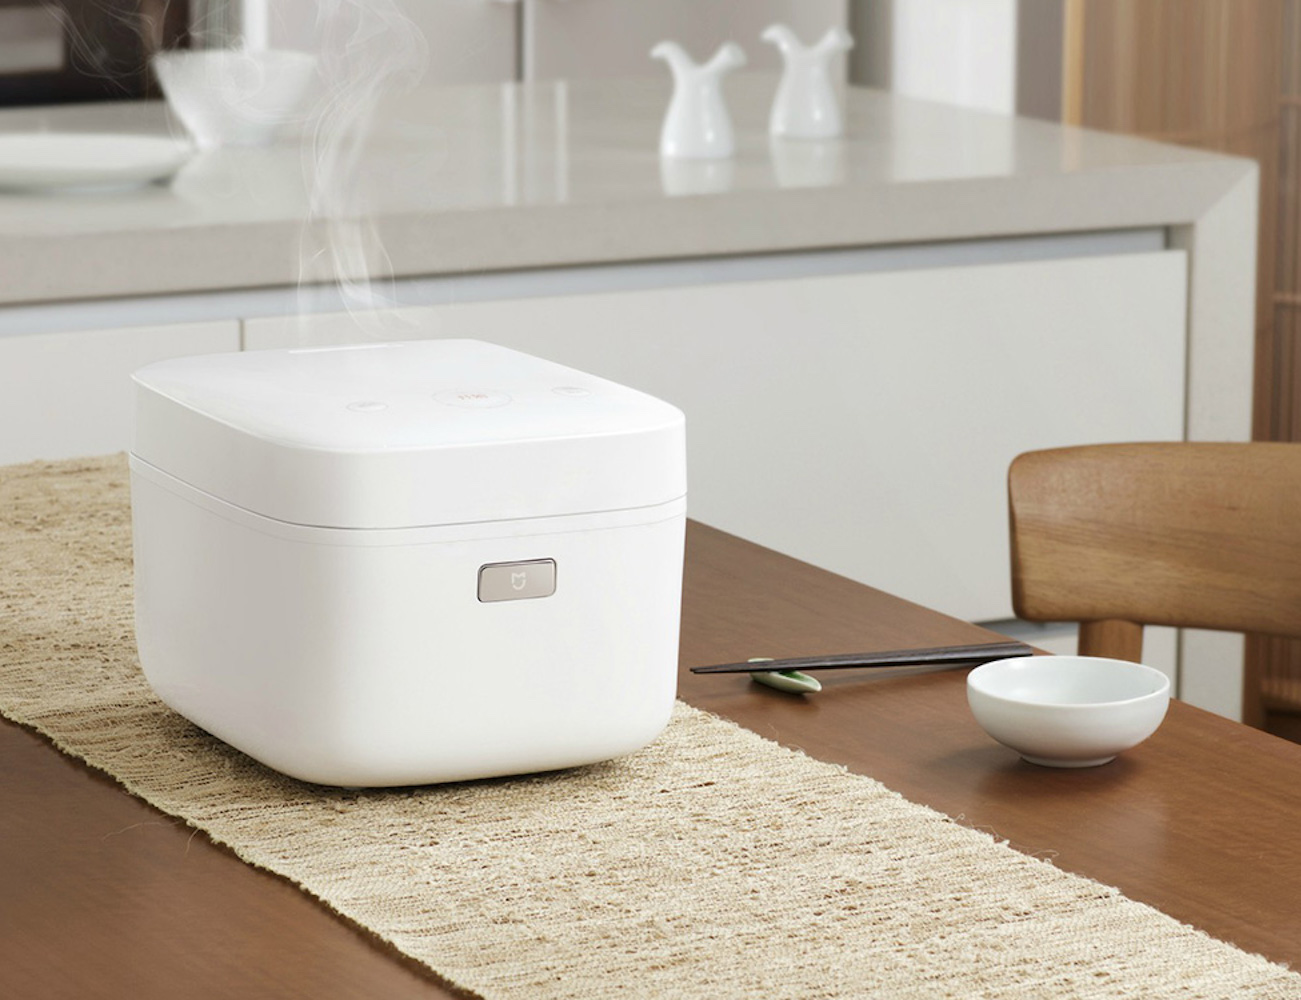 mi-rice-cooker-by-xiaomi-04